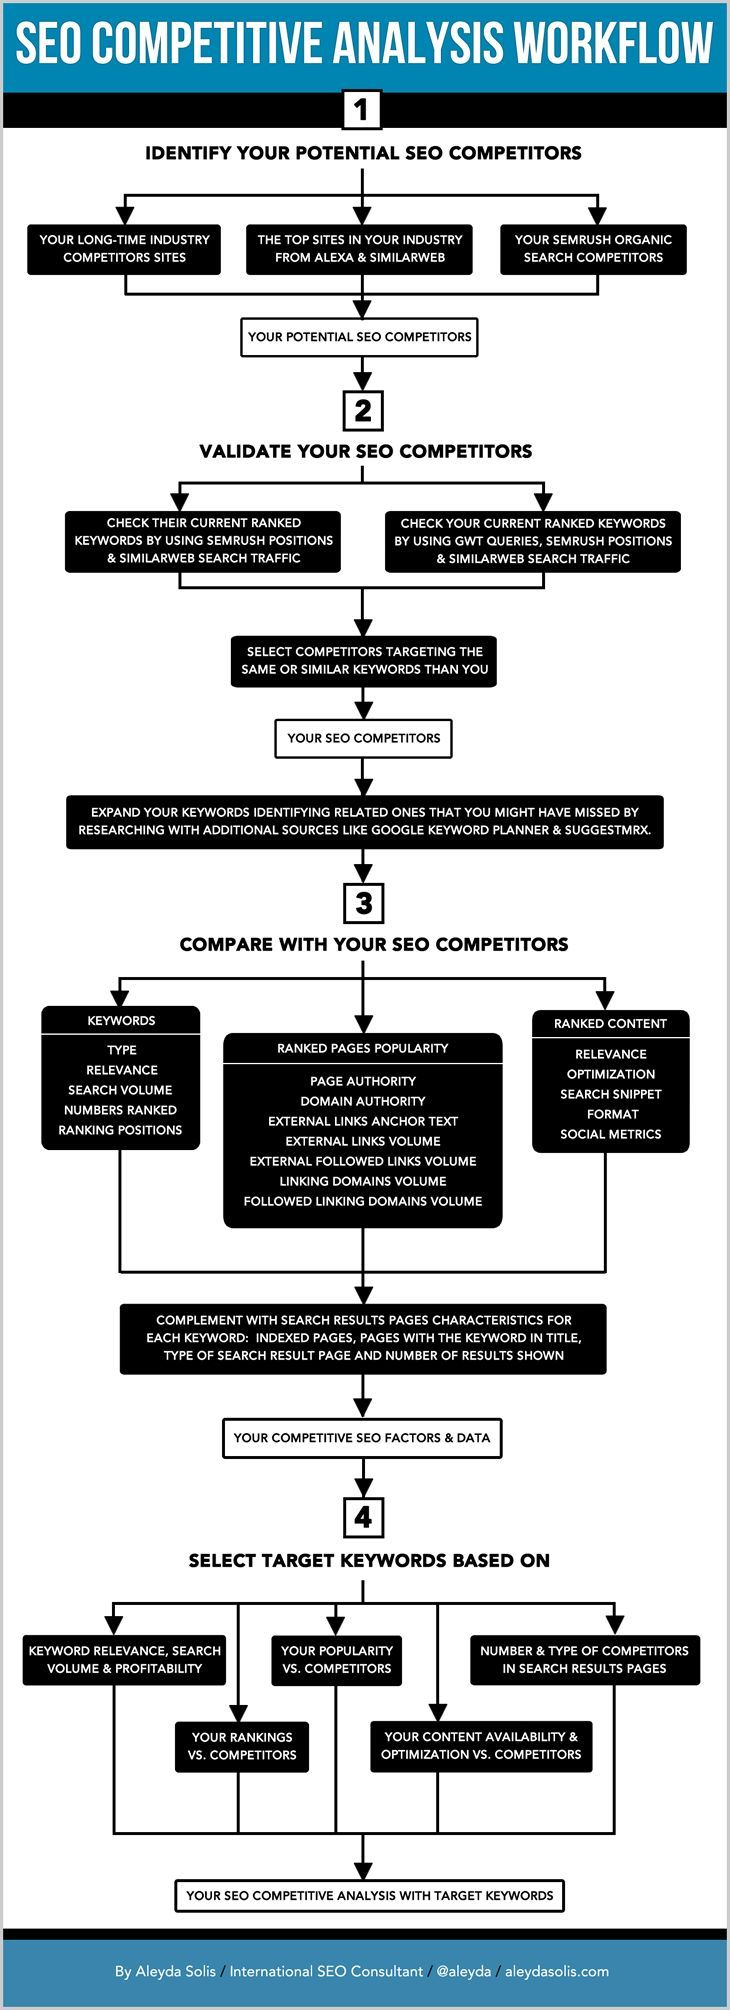 #SEO Competitve Analysis WorkFlow explained well by @Aleyda Rosado on @Mandee Stephens Blog